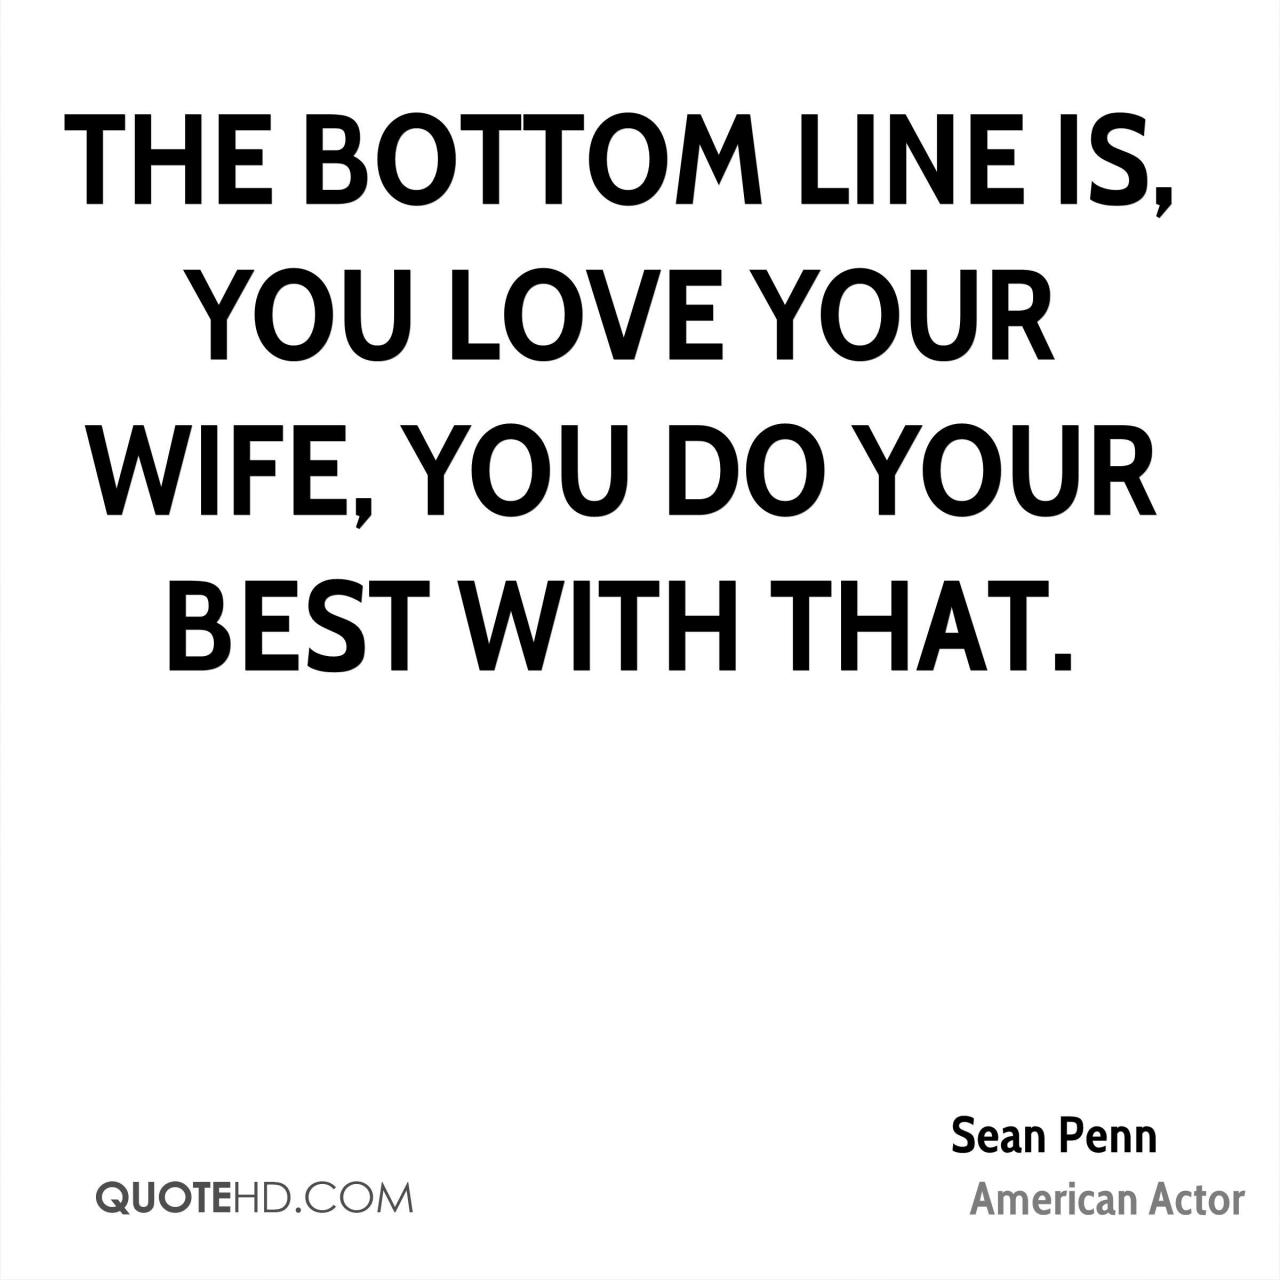 The Bottom Line Is You Love Your Wife You Do Your Best With That